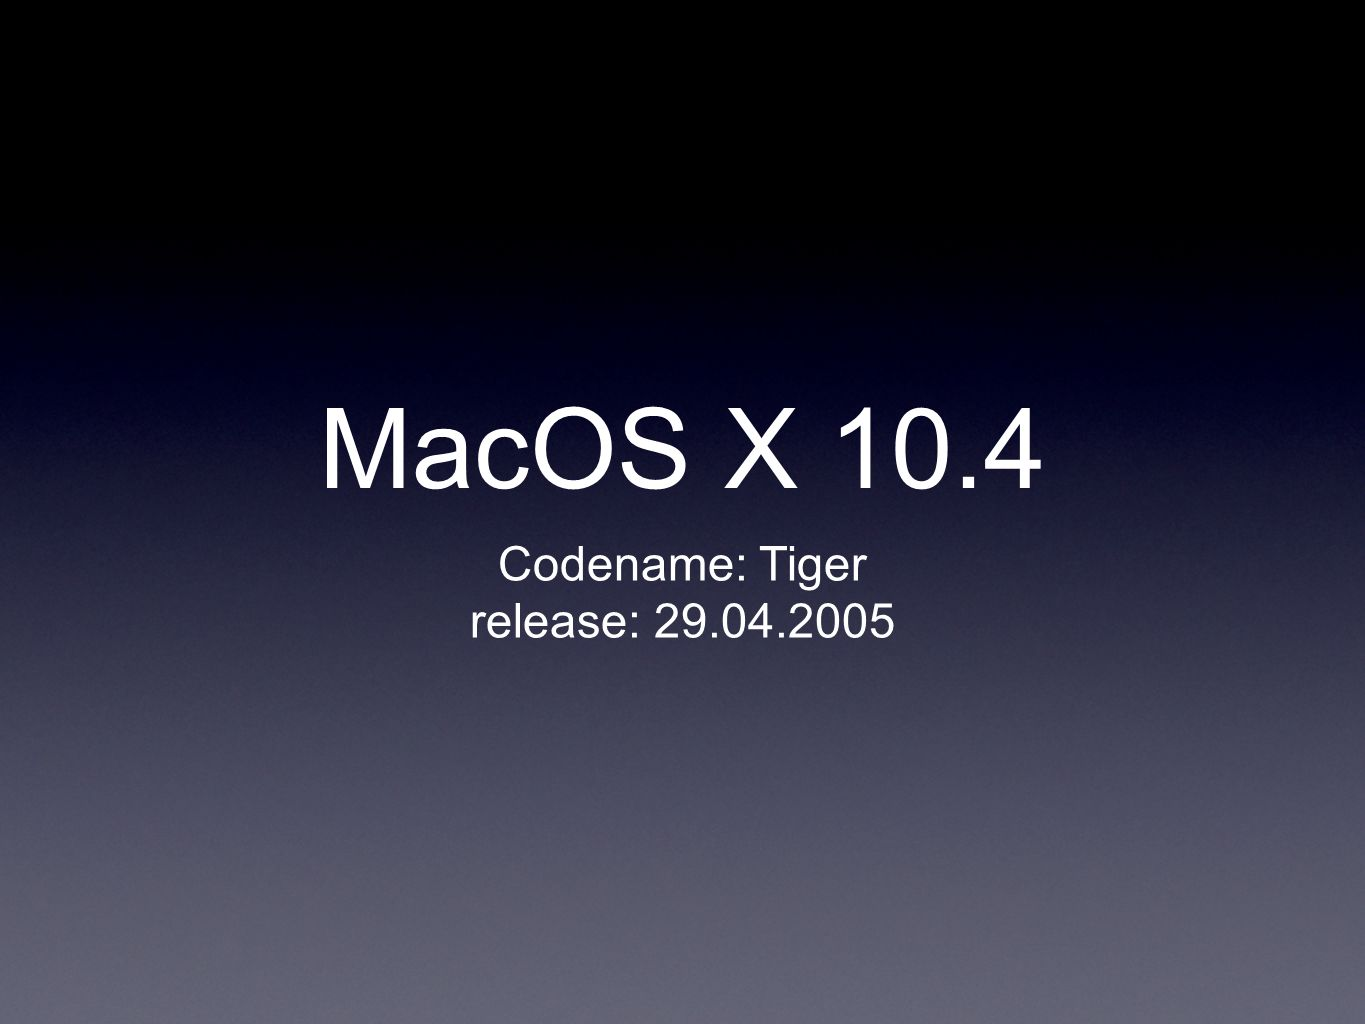 MacOS X 10.4 Codename: Tiger release: 29.04.2005